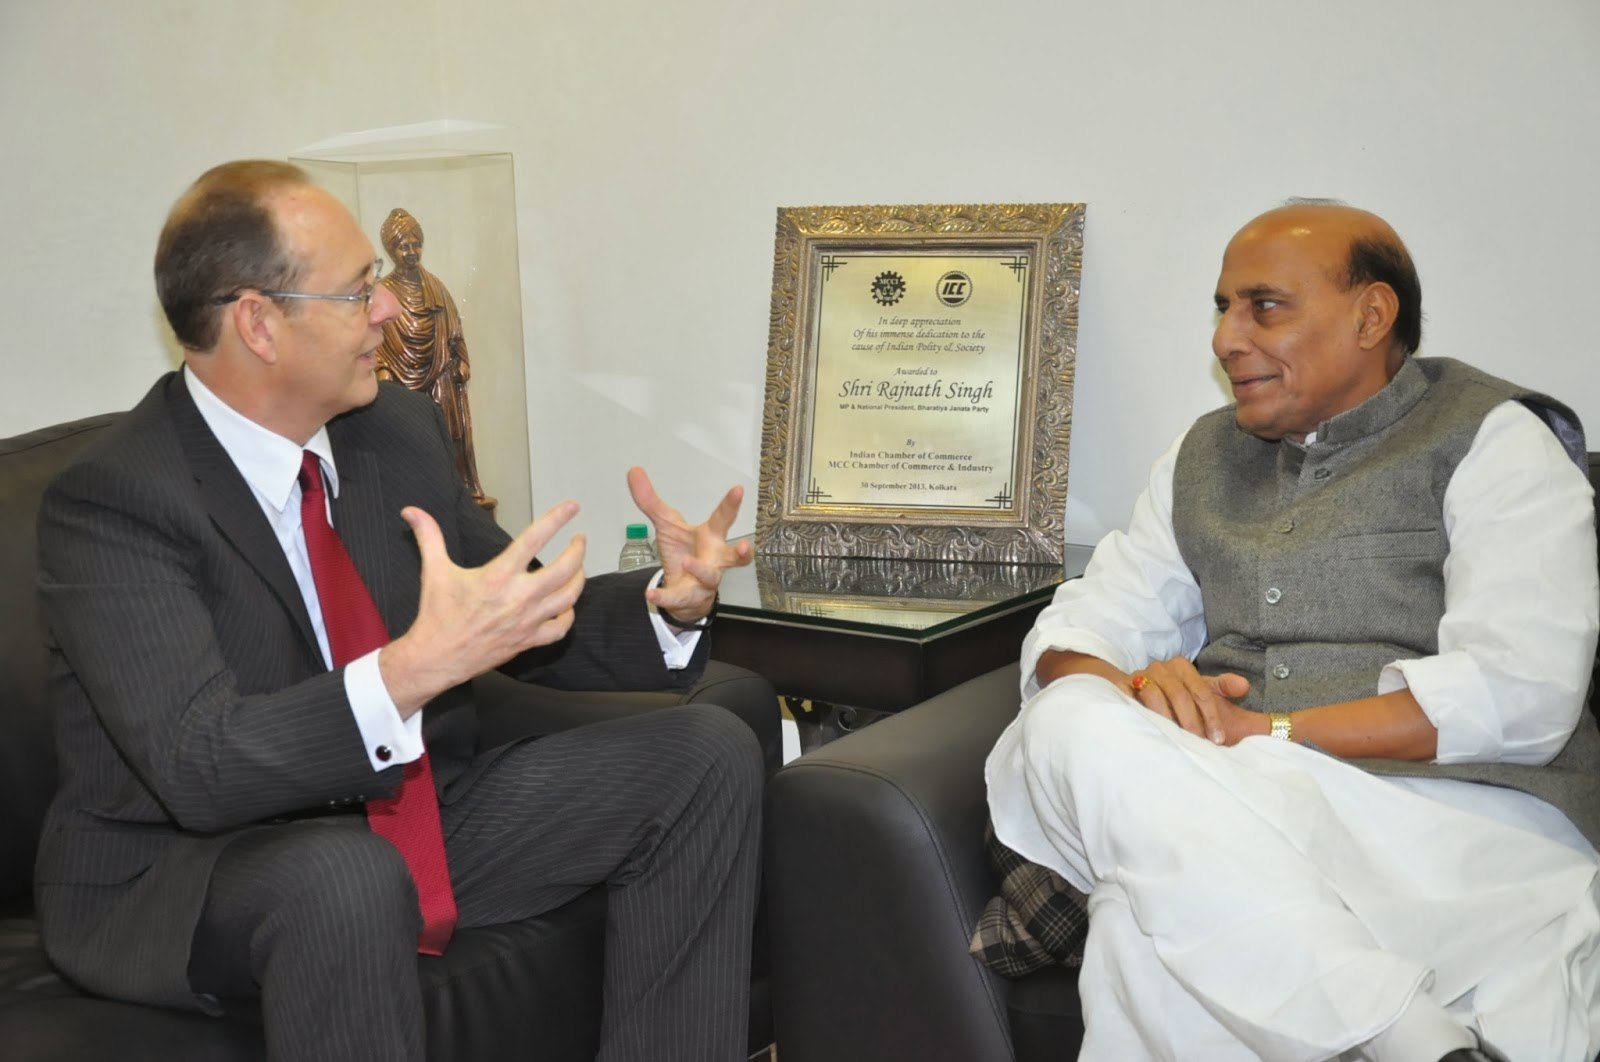 Rajnath Singh with British High Commissioner, Mr. James Bevan